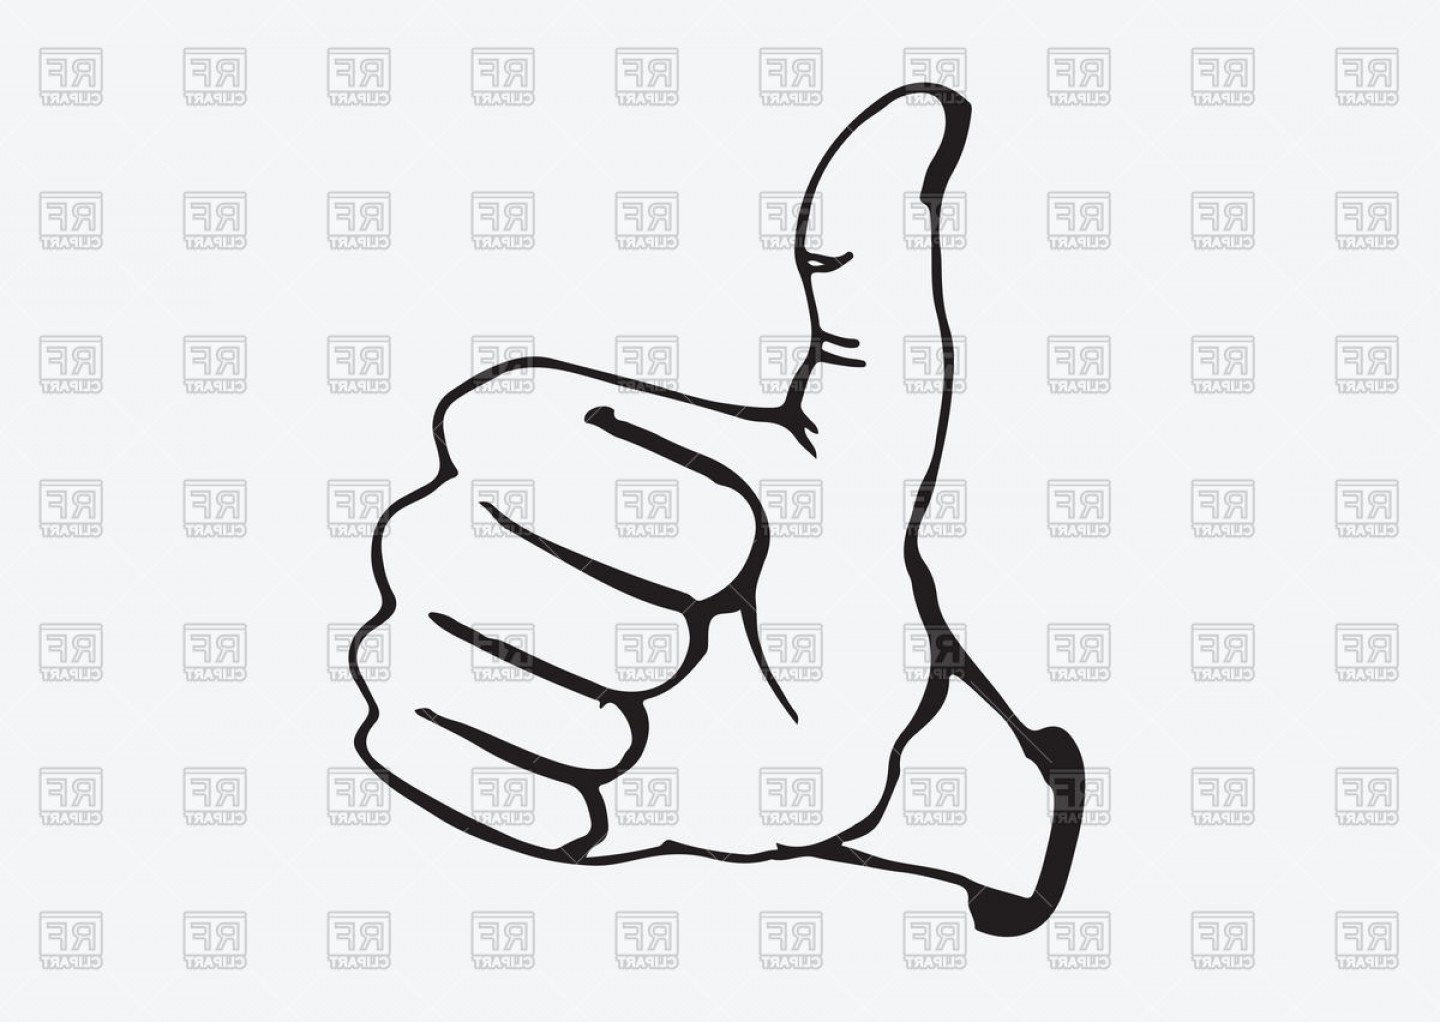 Thumbs Up Symbol Hand Drawn Style Vector Clipart.